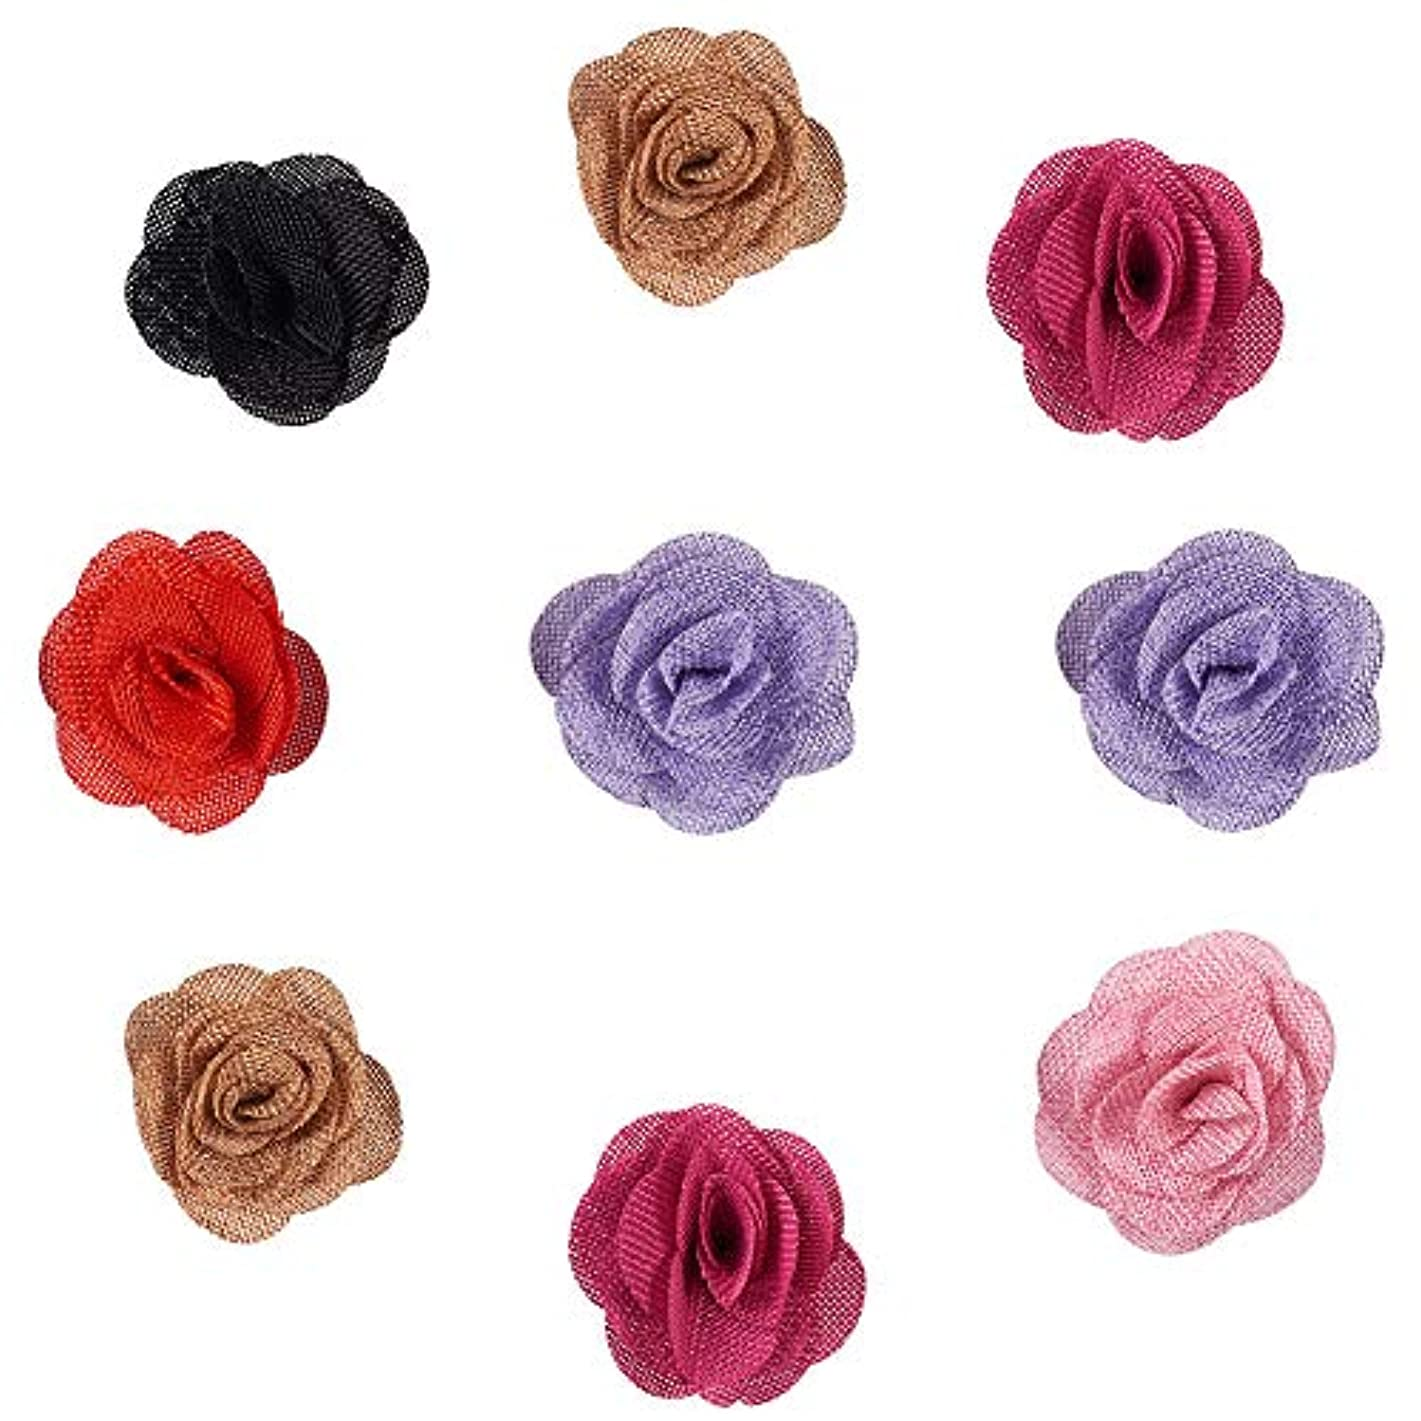 PH PandaHall 12PCS 6 Color Burlap Flowers Packs Wedding Decorations Burlap Rose Linen Flower for DIY Craft Making and Christmas Home Wedding Party Decoration